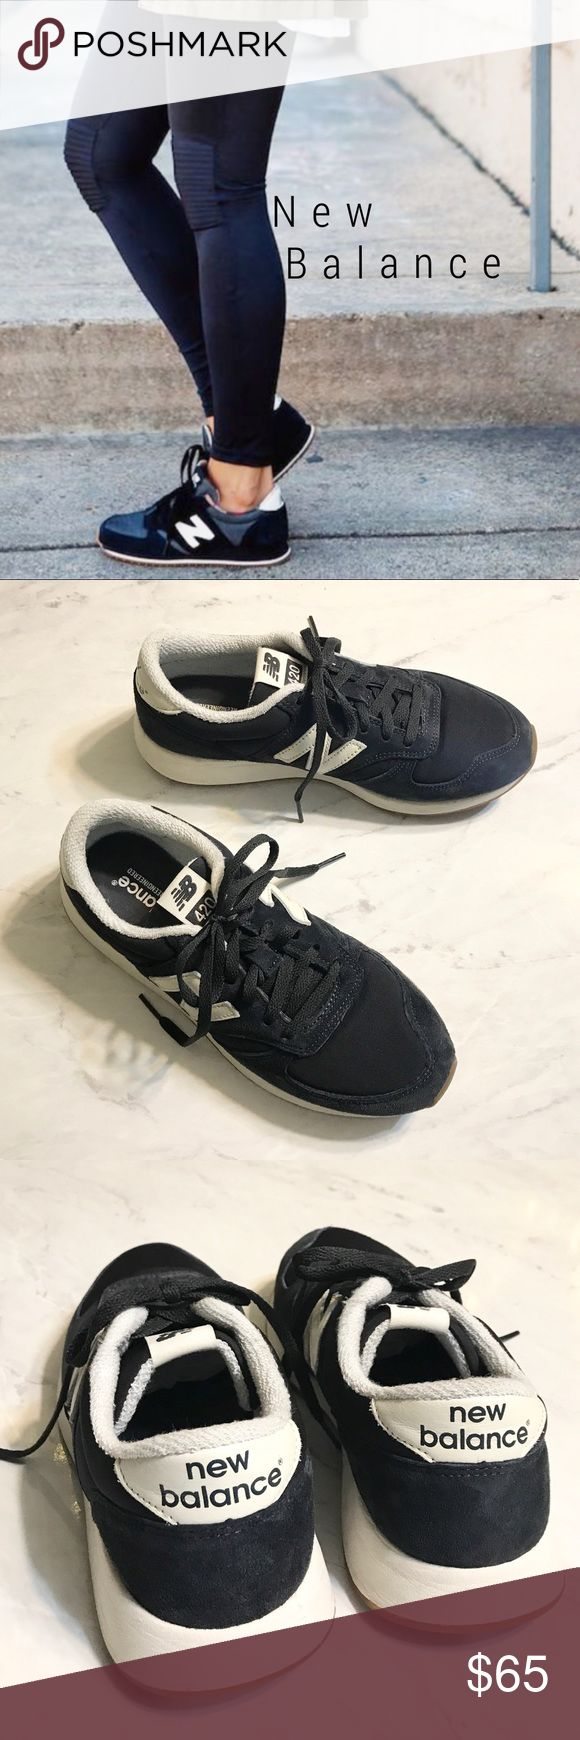 New Balance 420 navy sneakers LOOOOVE New Balance! SO classic and stylish! 😍 This classic sneaker features a sleek, streamlined look, superior cushioning and a lightweight feel. Lace-up style Removable insole Suede and textile upper/textile lining/rubber sole NEW.... worn outside for maybe  5 minutes....  so great condition!!   ******** I guess I'm the only one in the world who doesn't know these runs small, SO they are an 8 but really are best for a size 7.*******. (People pics for…